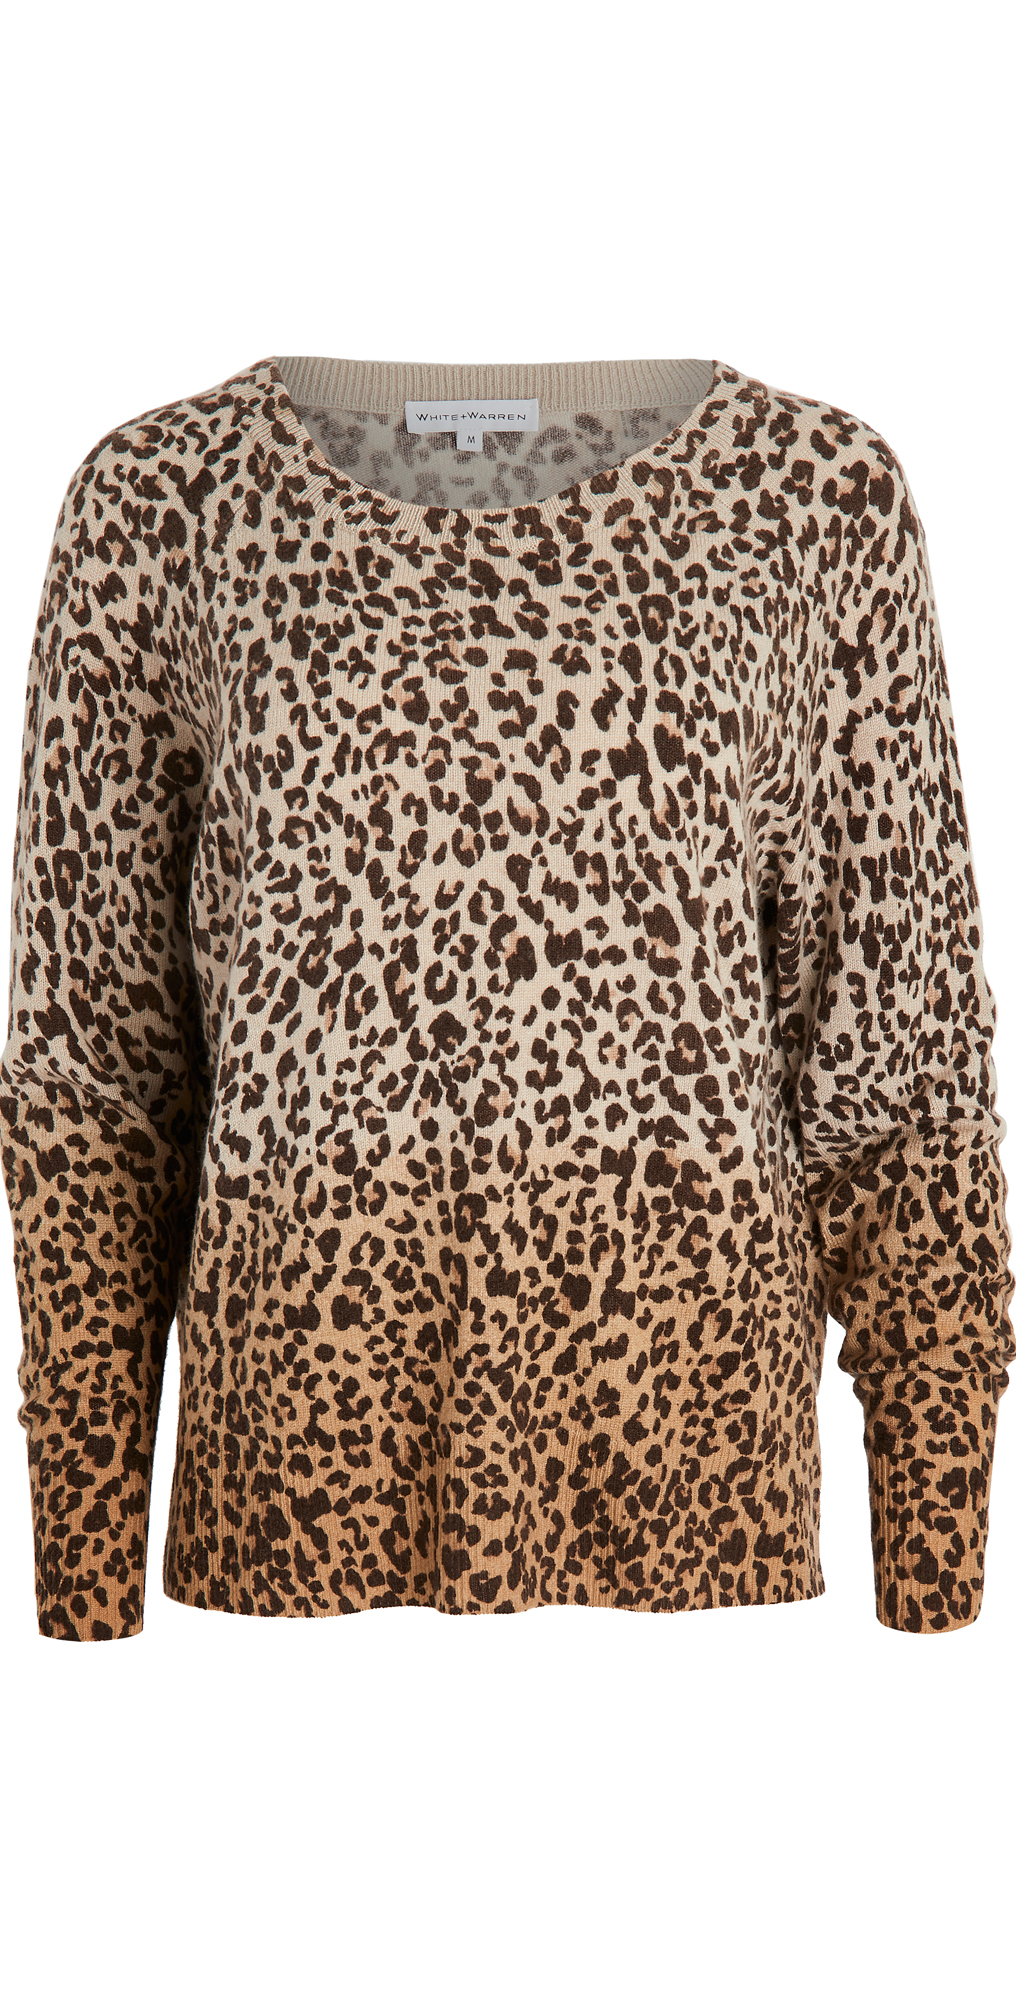 White + Warren Ombre Leopard Cashmere Sweater